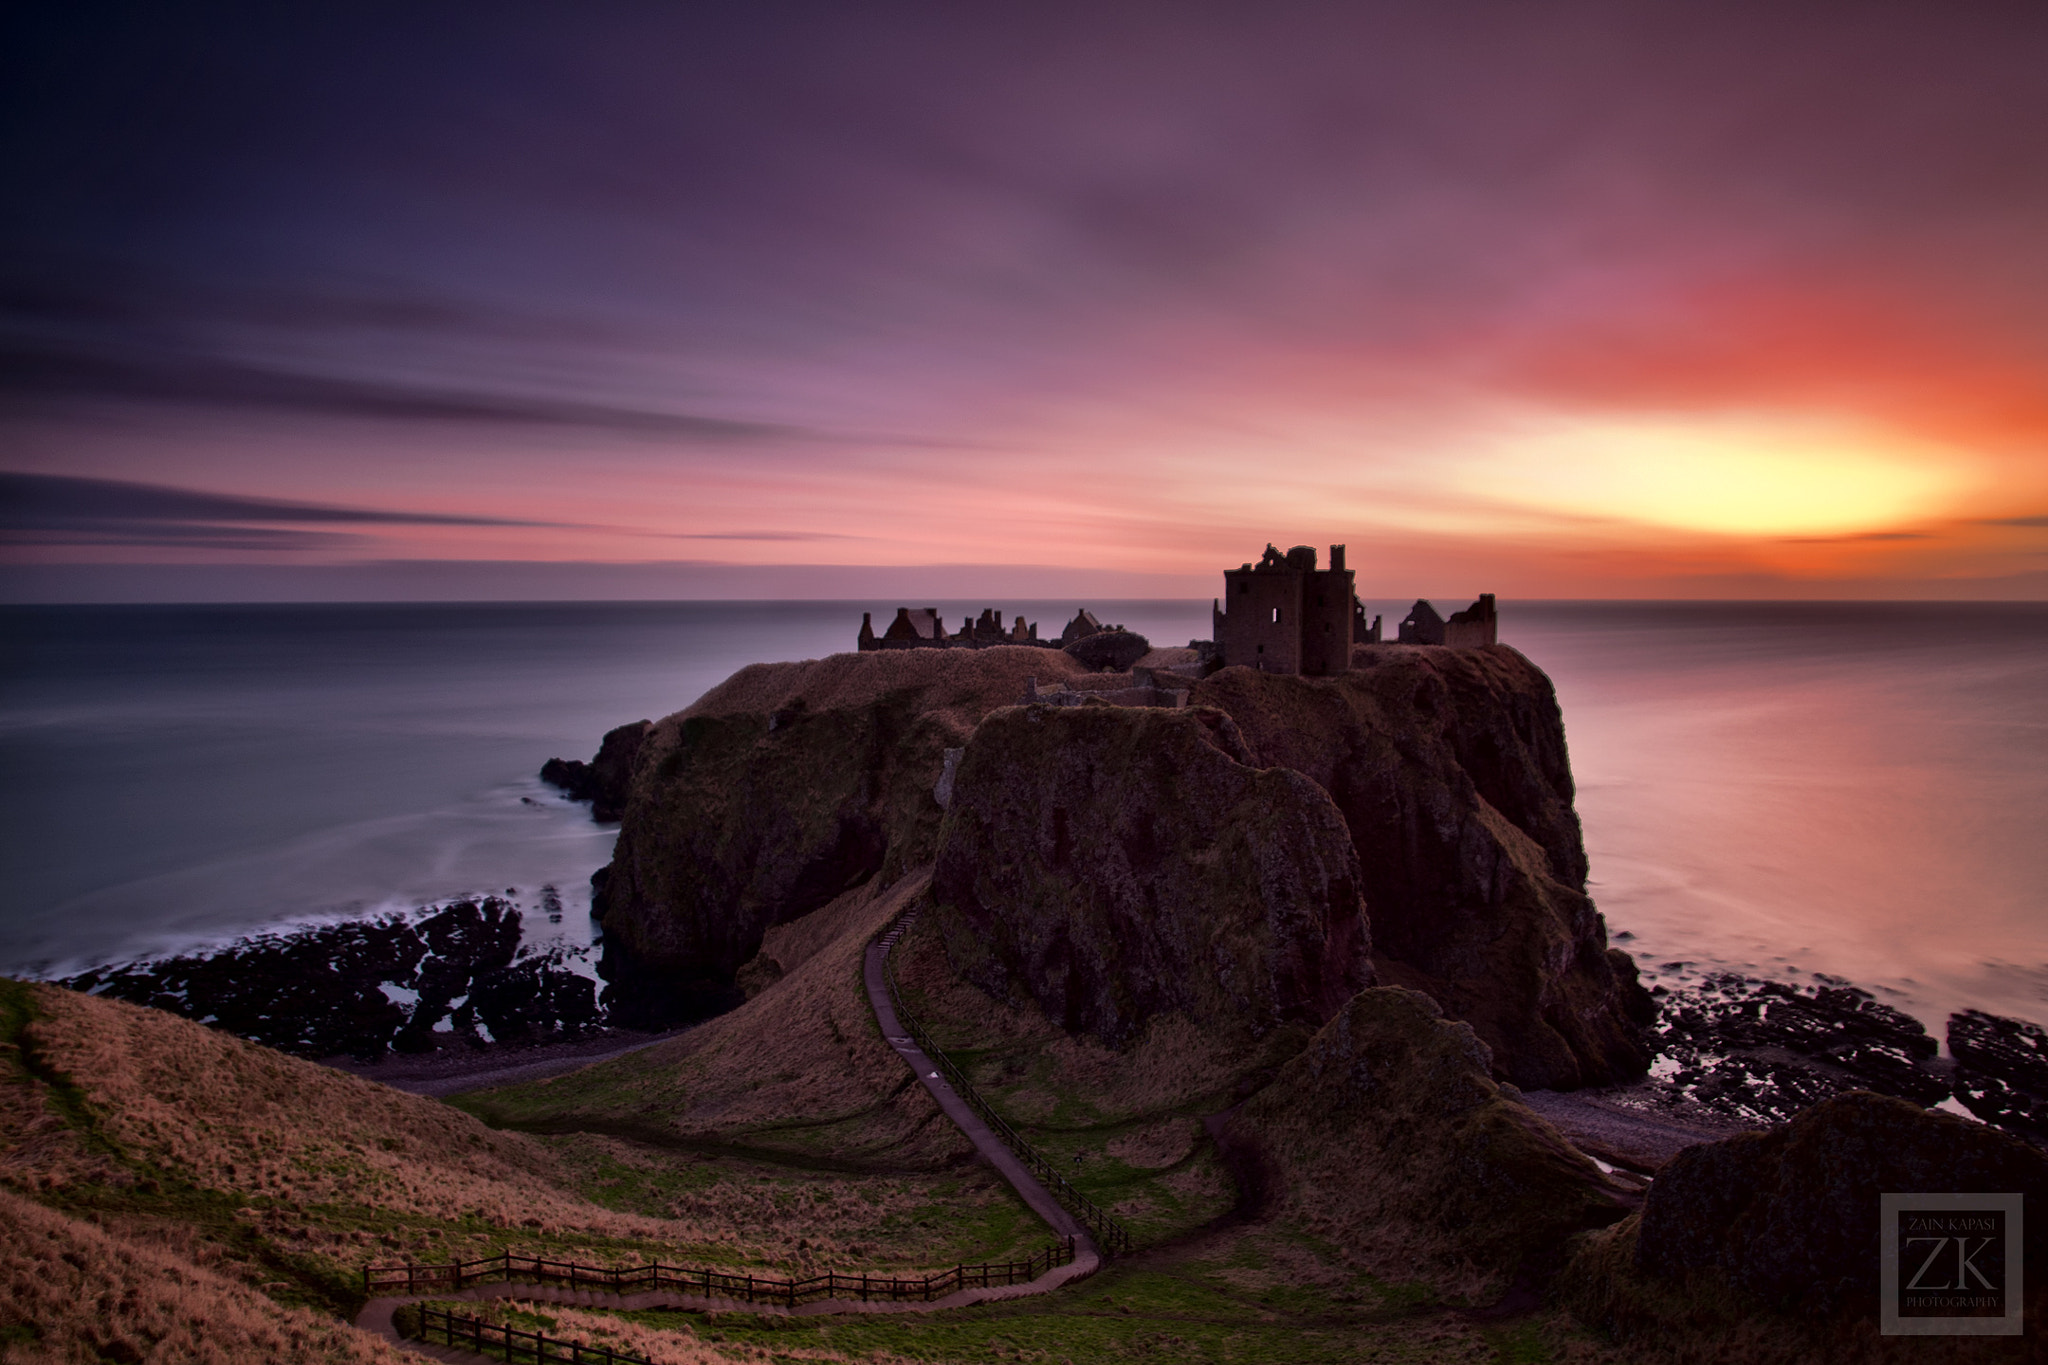 Photograph Dunnottar Castle by Zain Kapasi on 500px